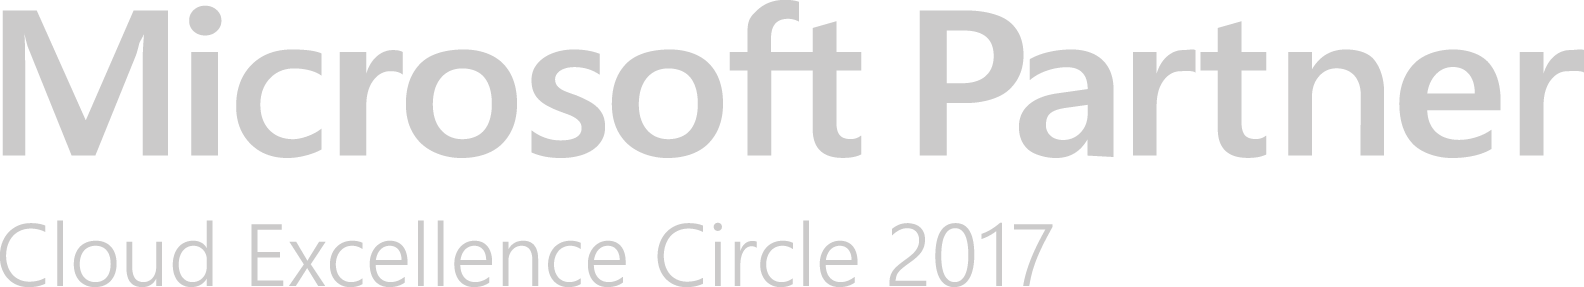 Microsoft Partner Cloud Excellence Circle 2017